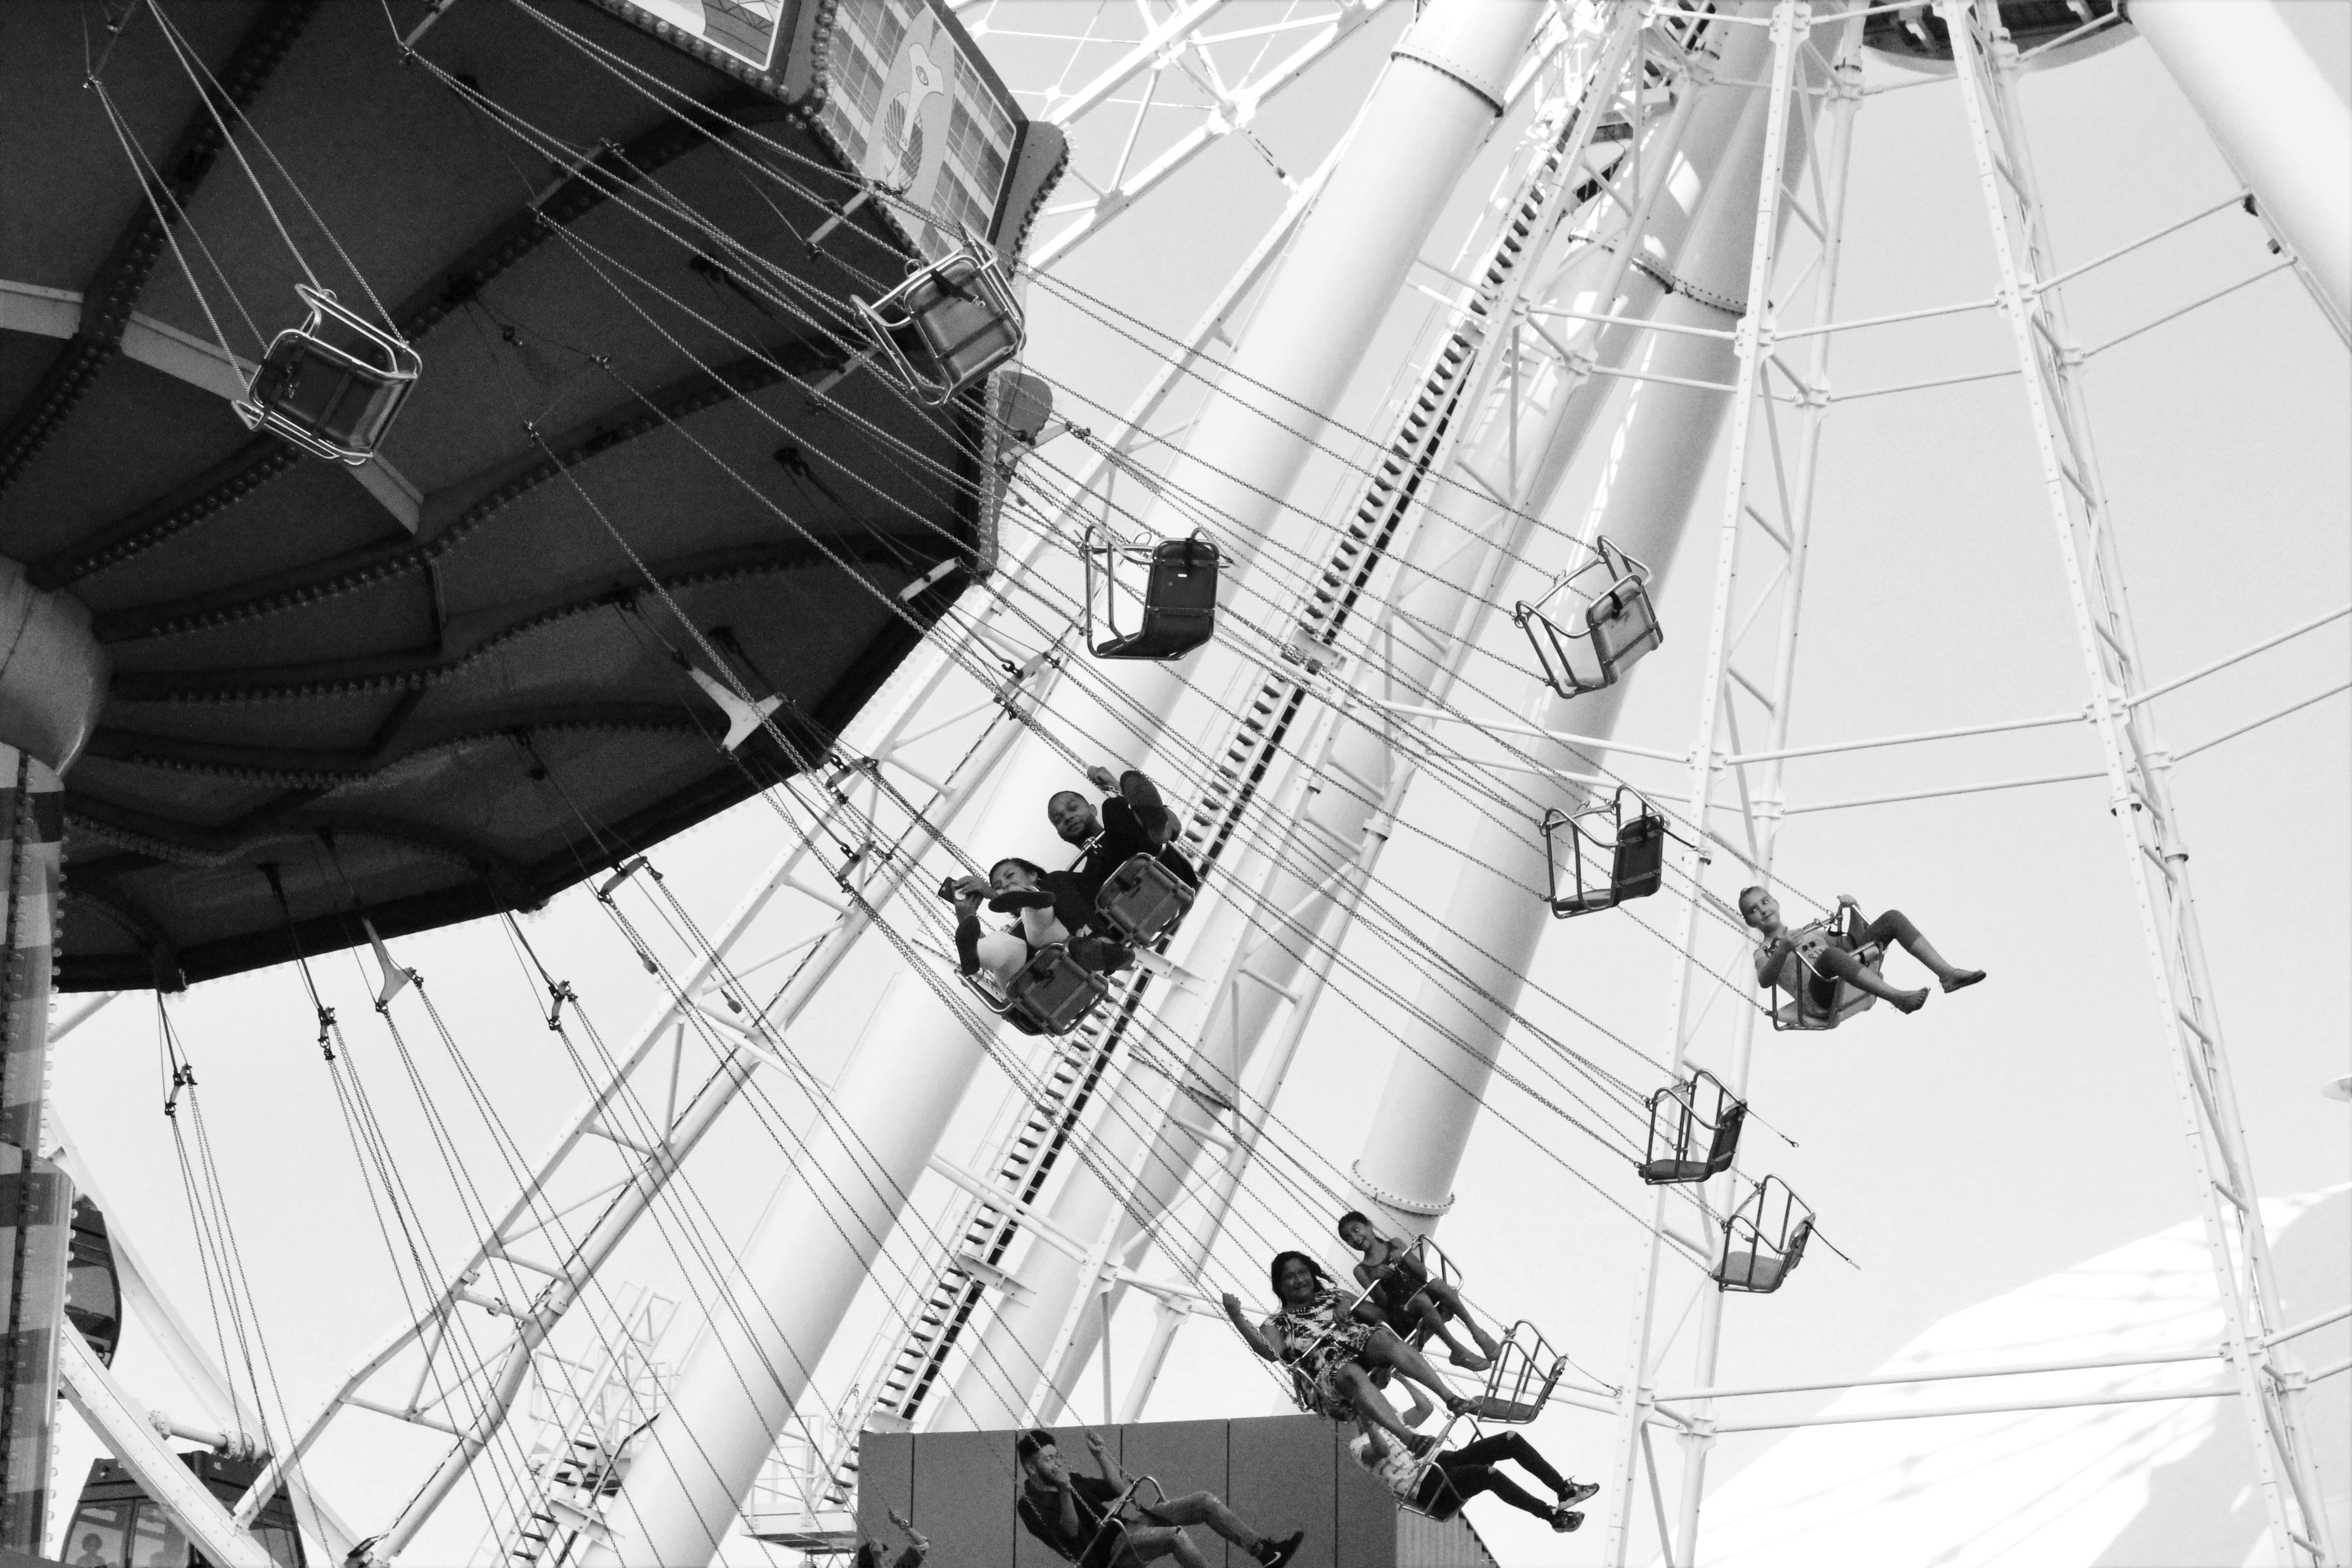 grayscale photo of people riding amusement park ride